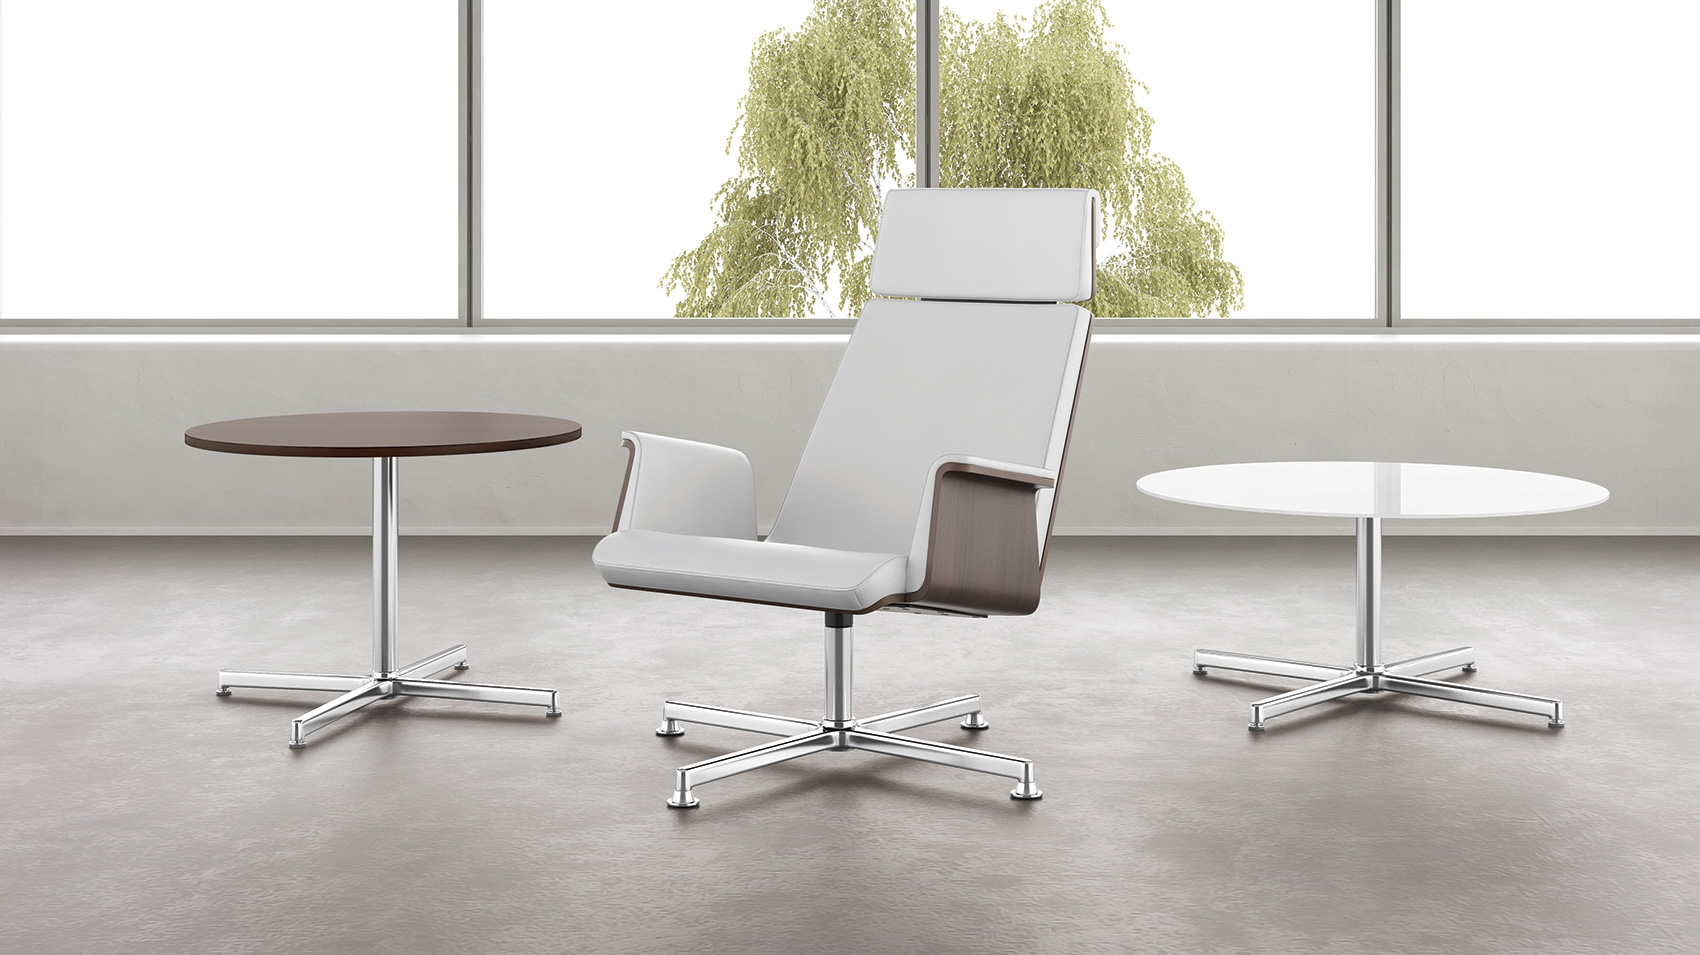 The Madrid Seating Collection Was Designed To Complement A Variety Of Table  Heights And Types Including Conference, Occasional And Desk Applications.